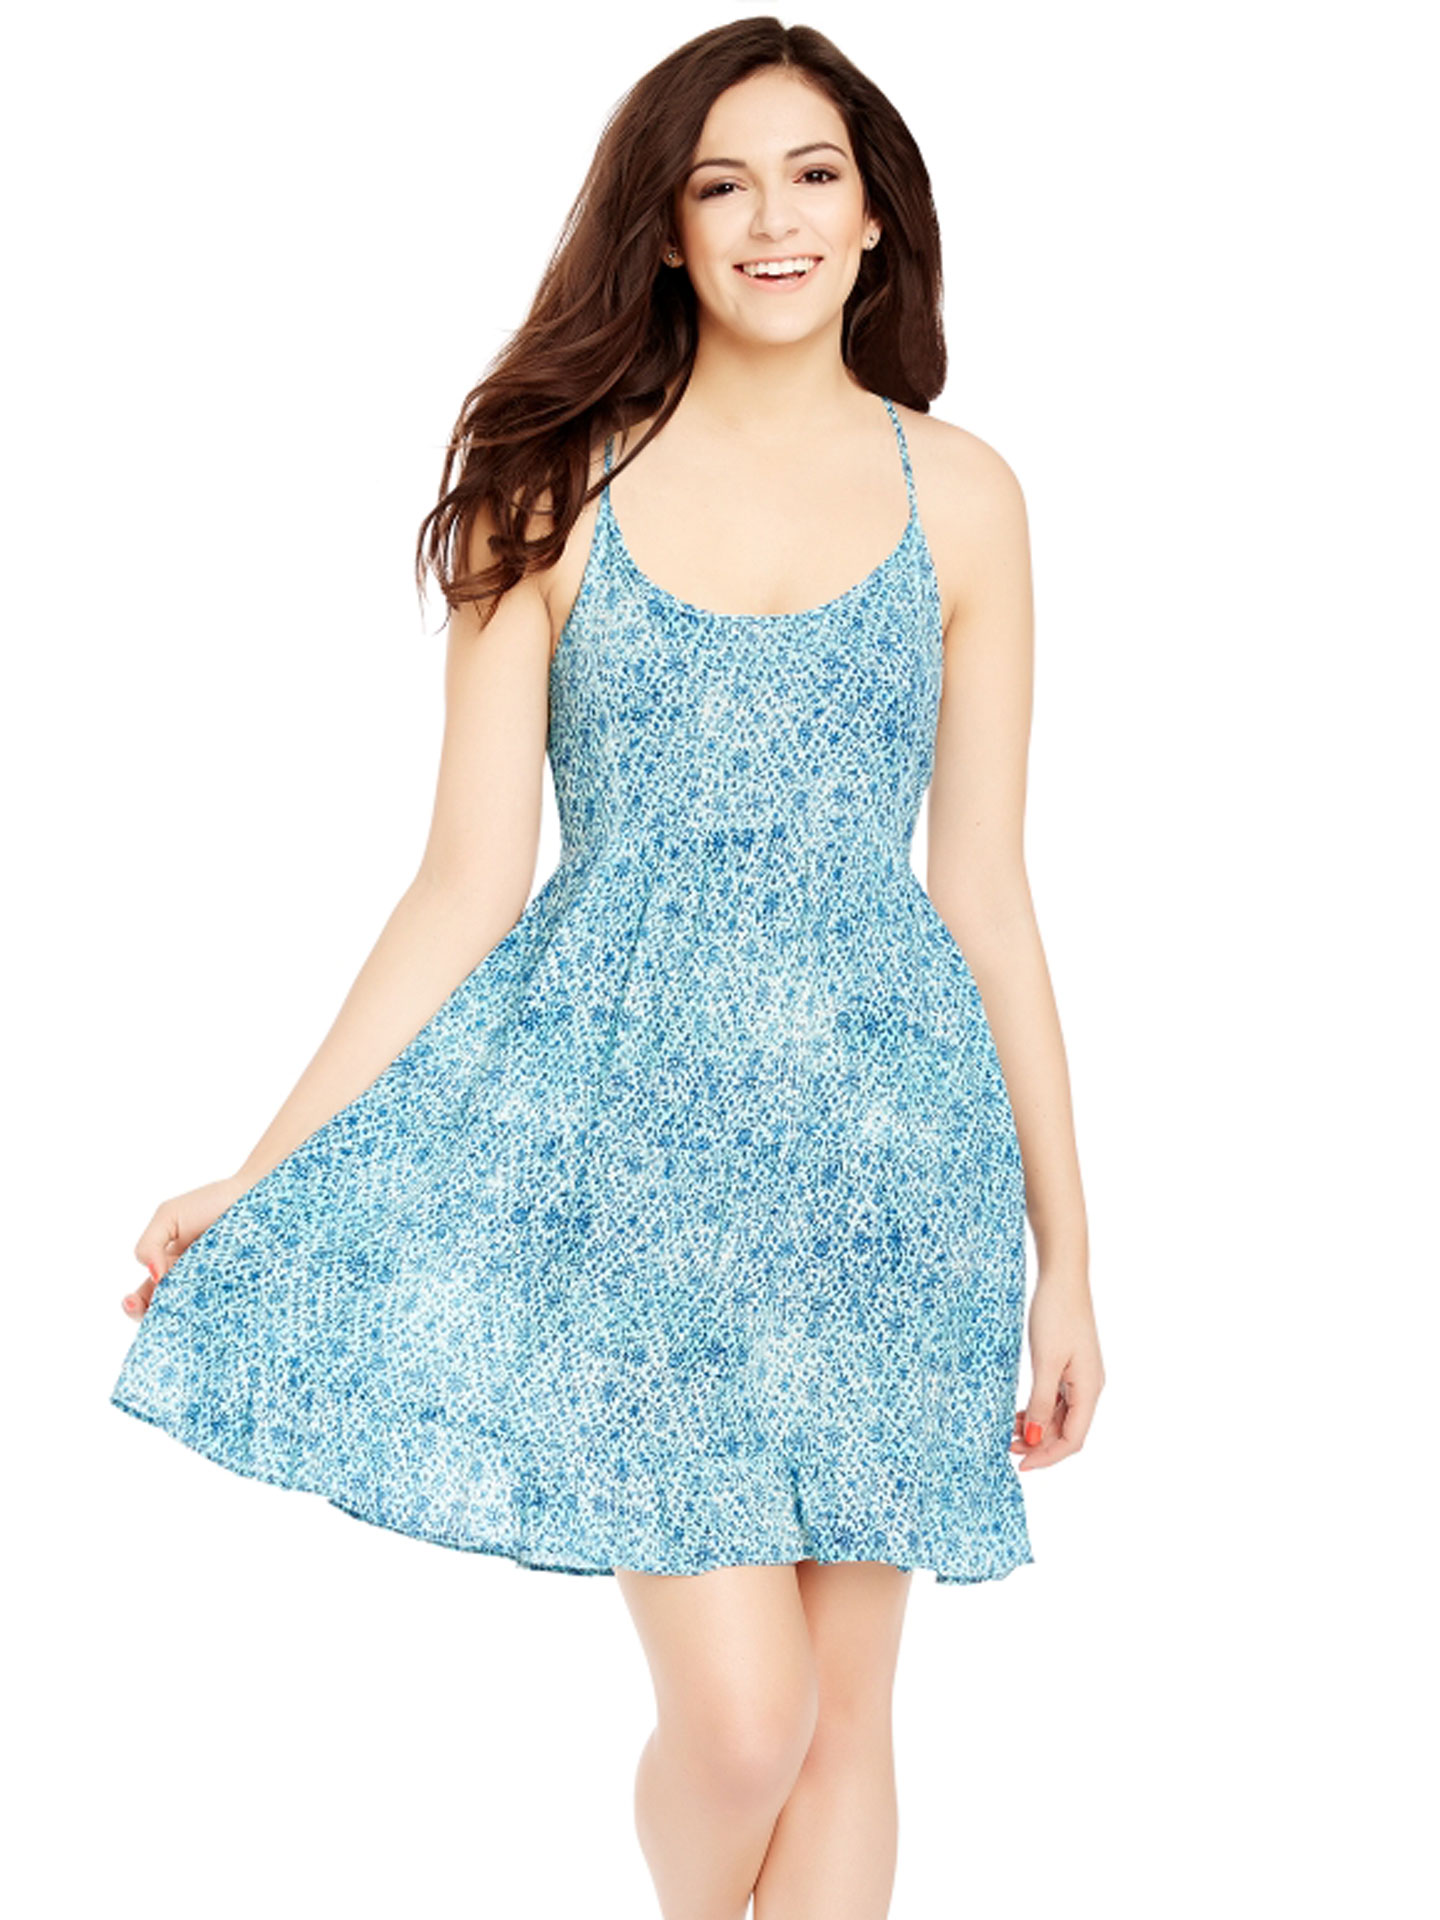 50 Cheap Summer Dresses - Cute Summer Dresses